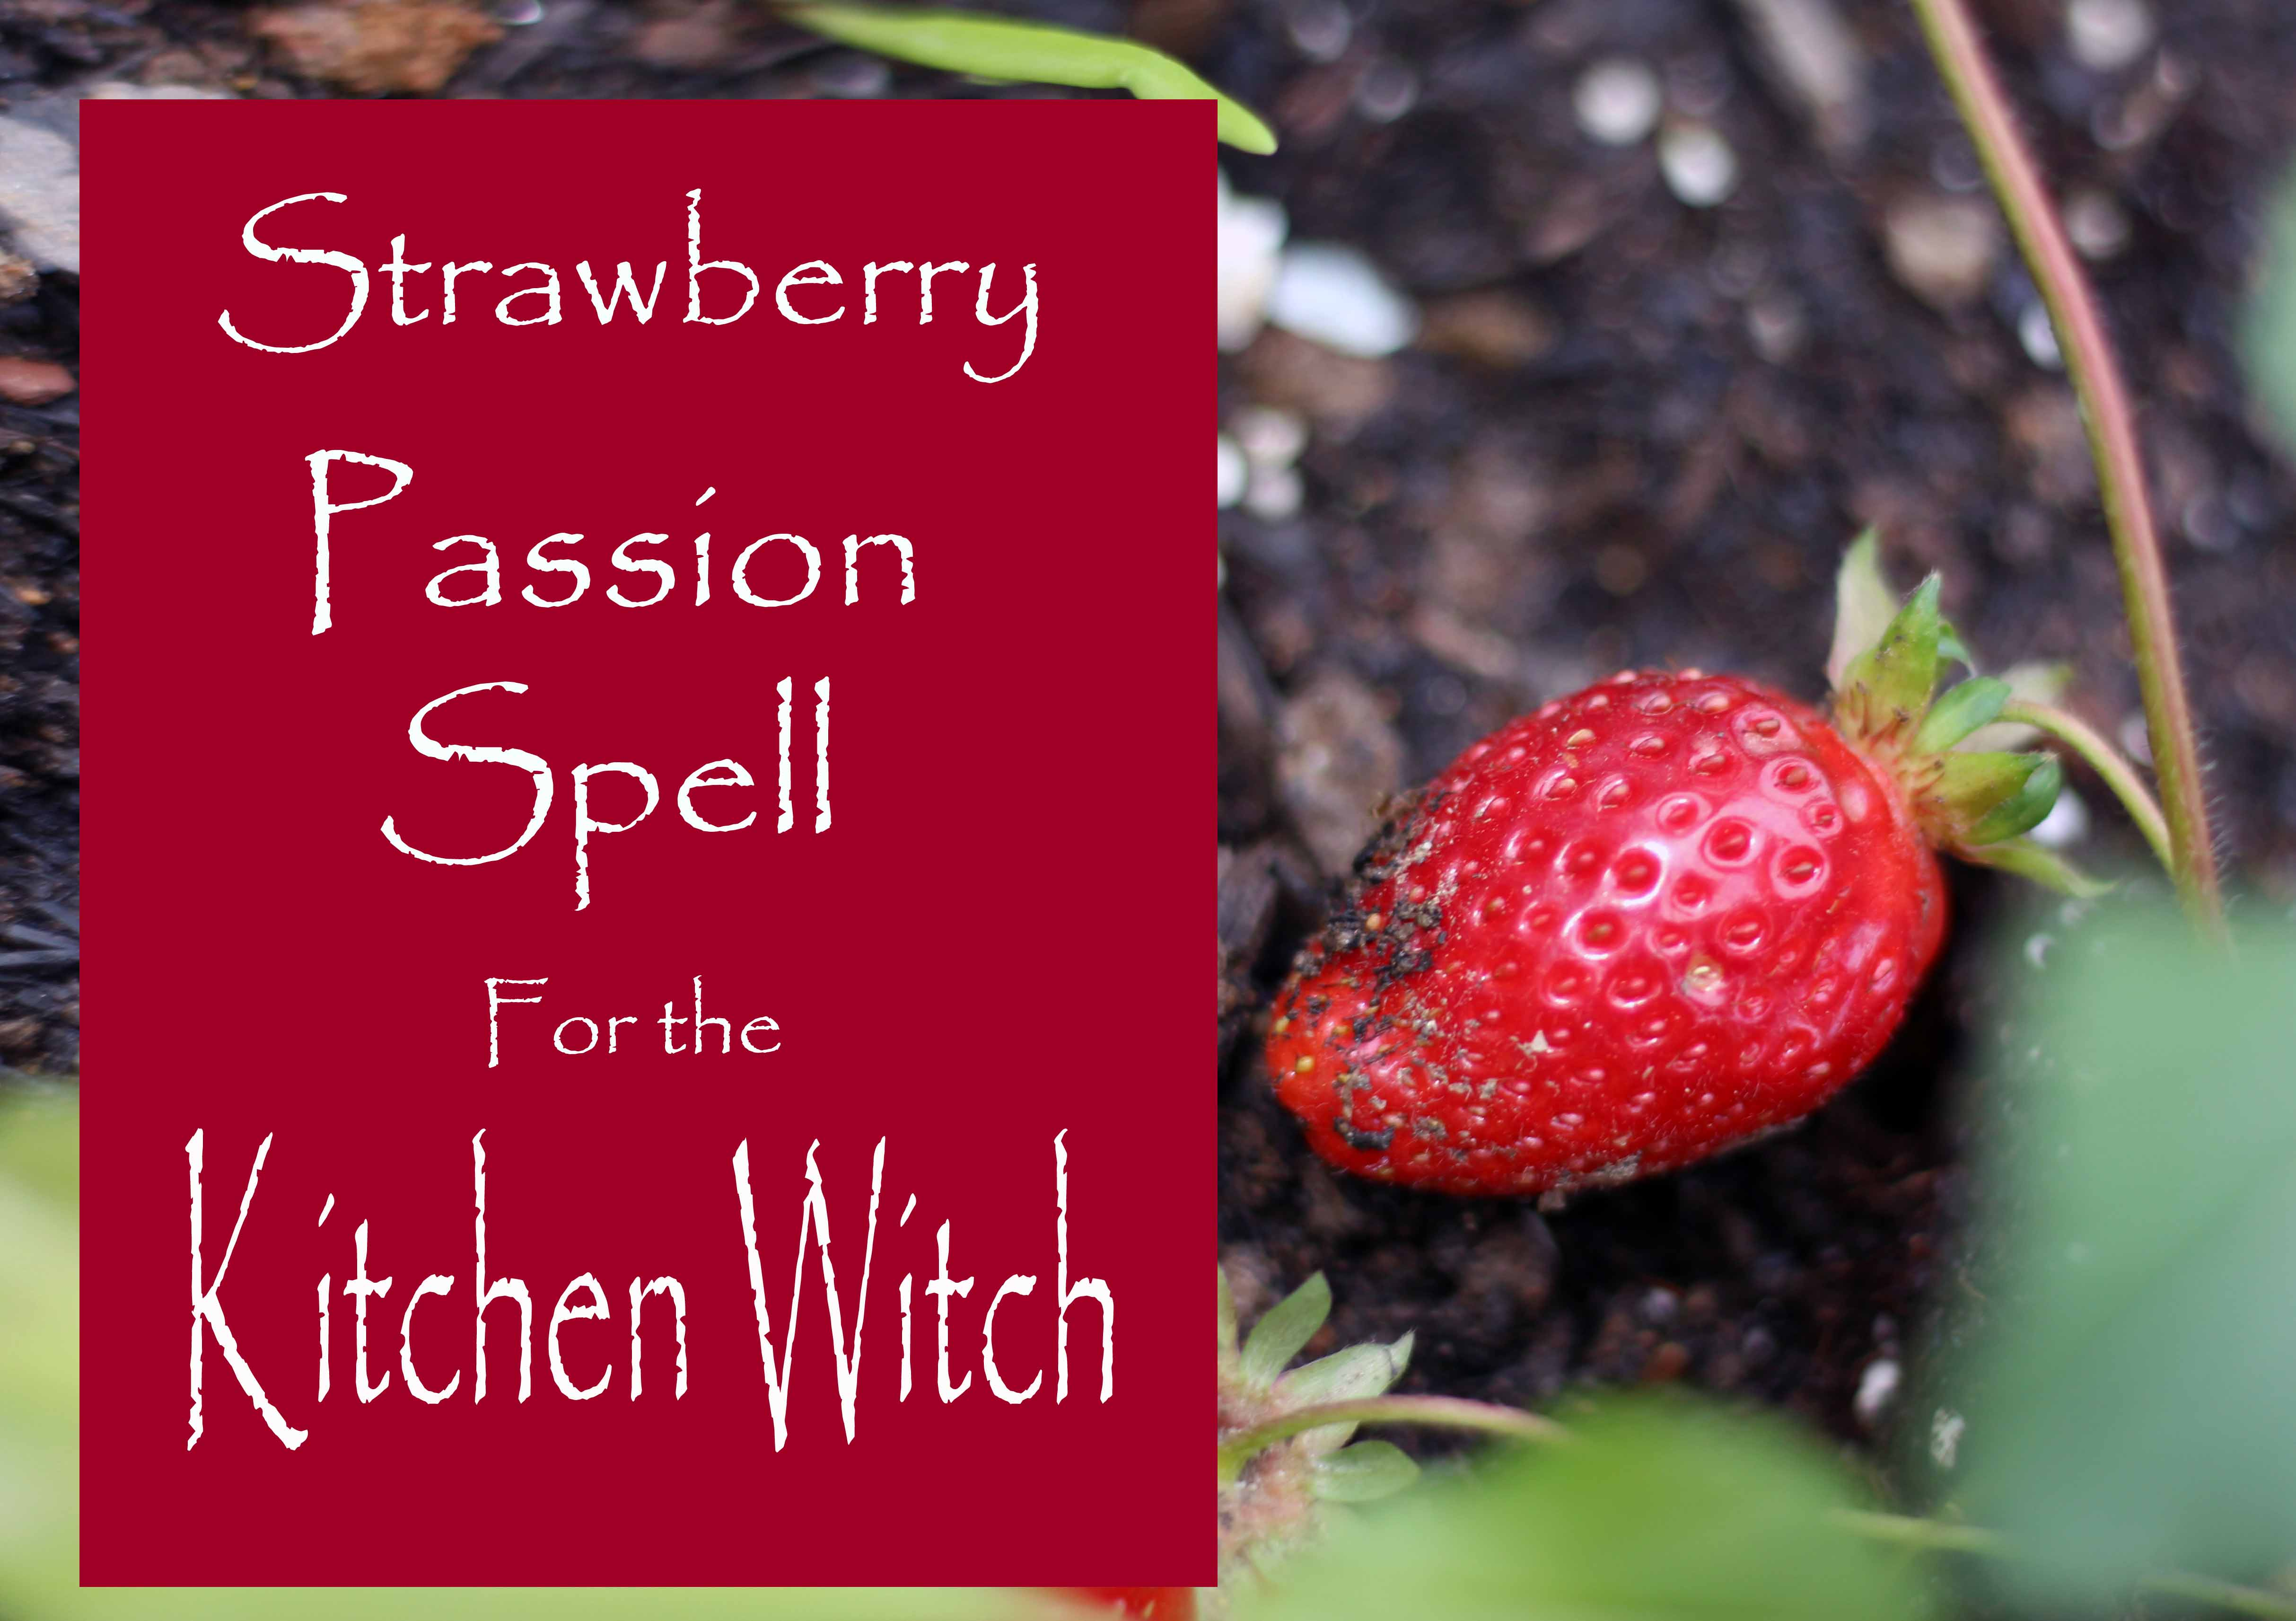 strawberry passion spell for the kitchen witch